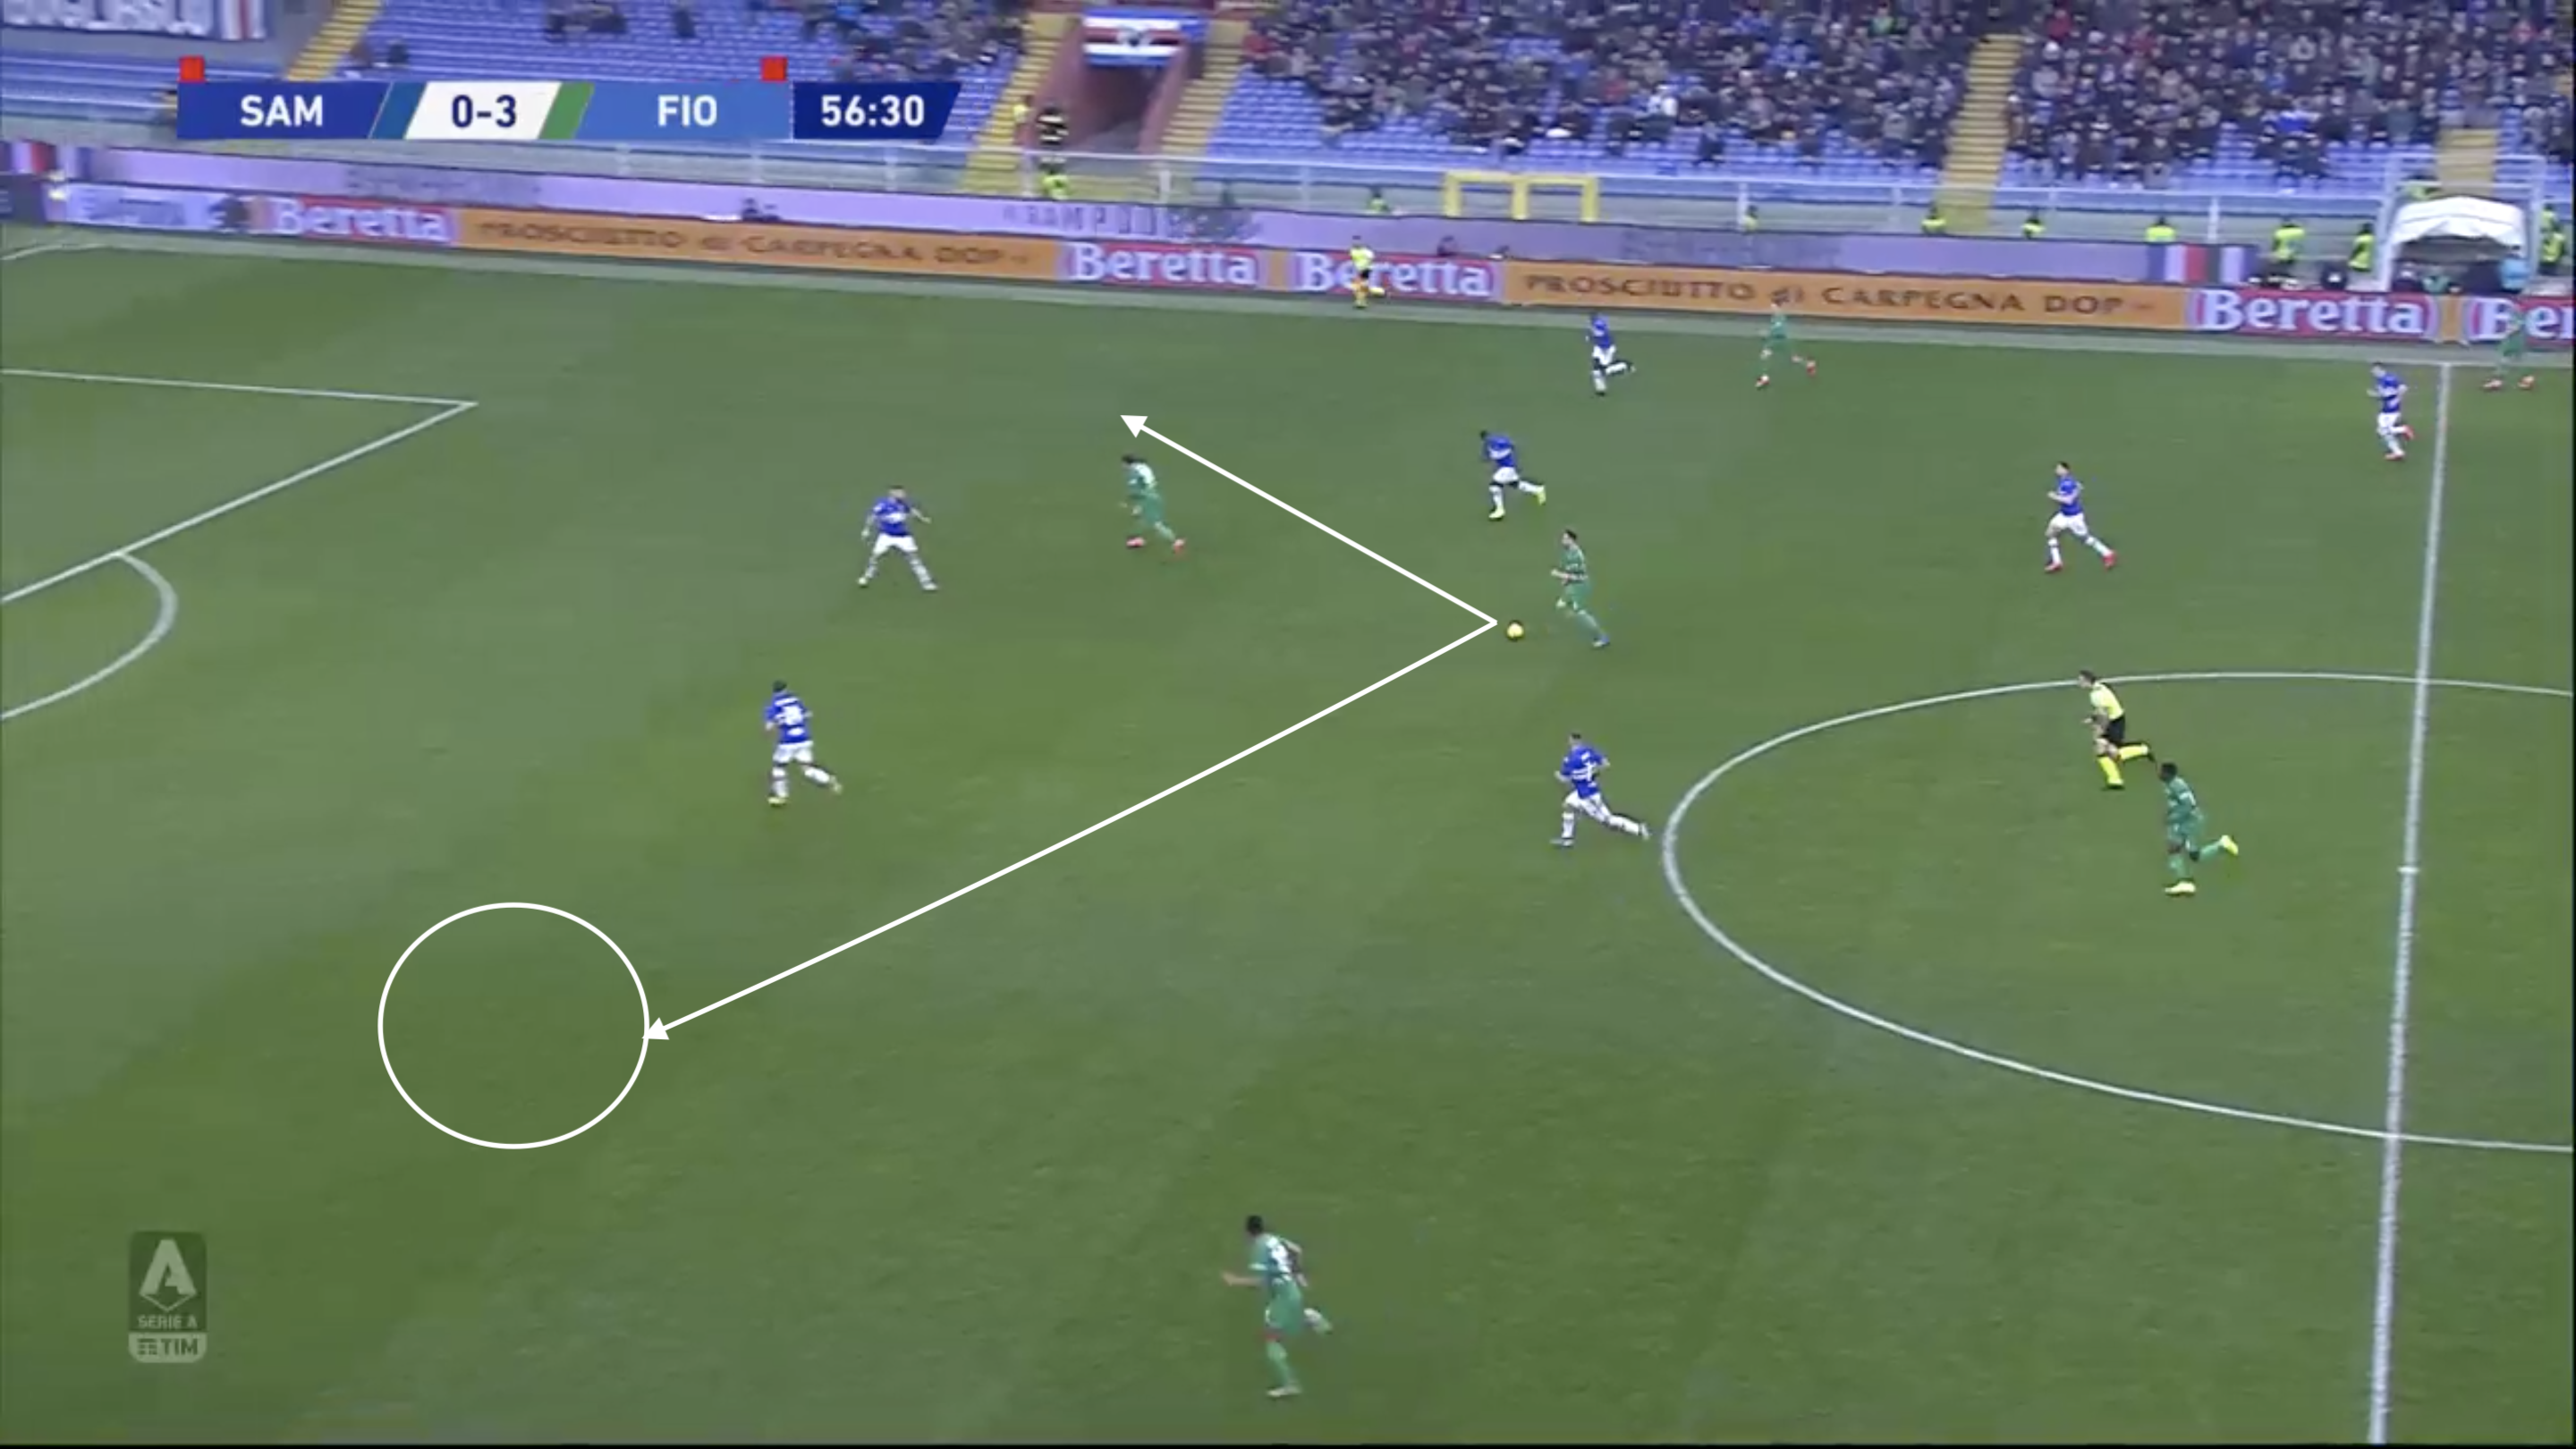 Serie A 2019/20: Sampdoria vs Fiorentina - tactical analysis tactics